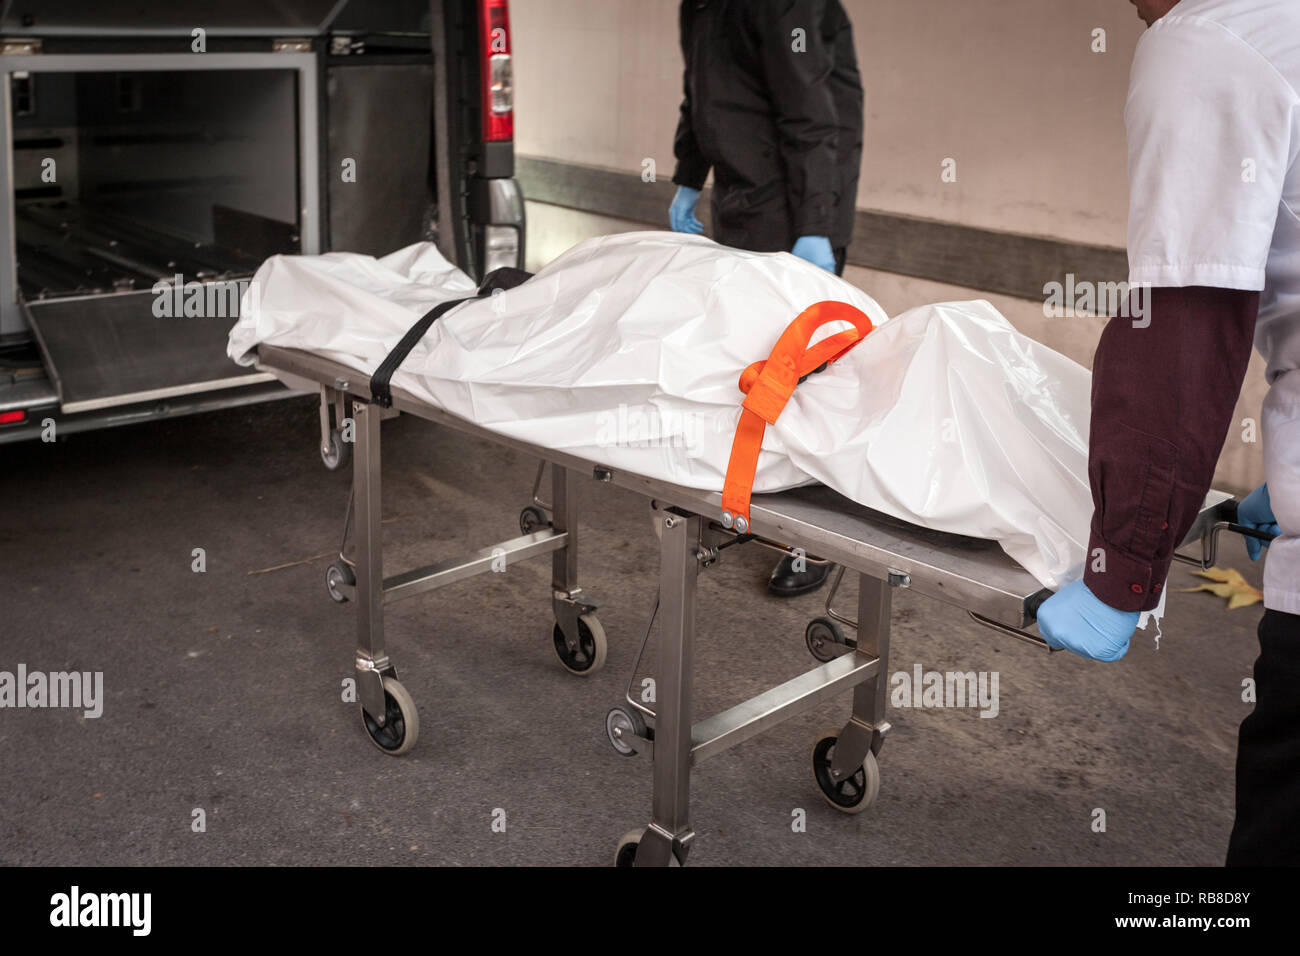 working on a dead body in a mortuary room in an hospital RB8D8Y - How To Get A Job In The Hospital Morgue